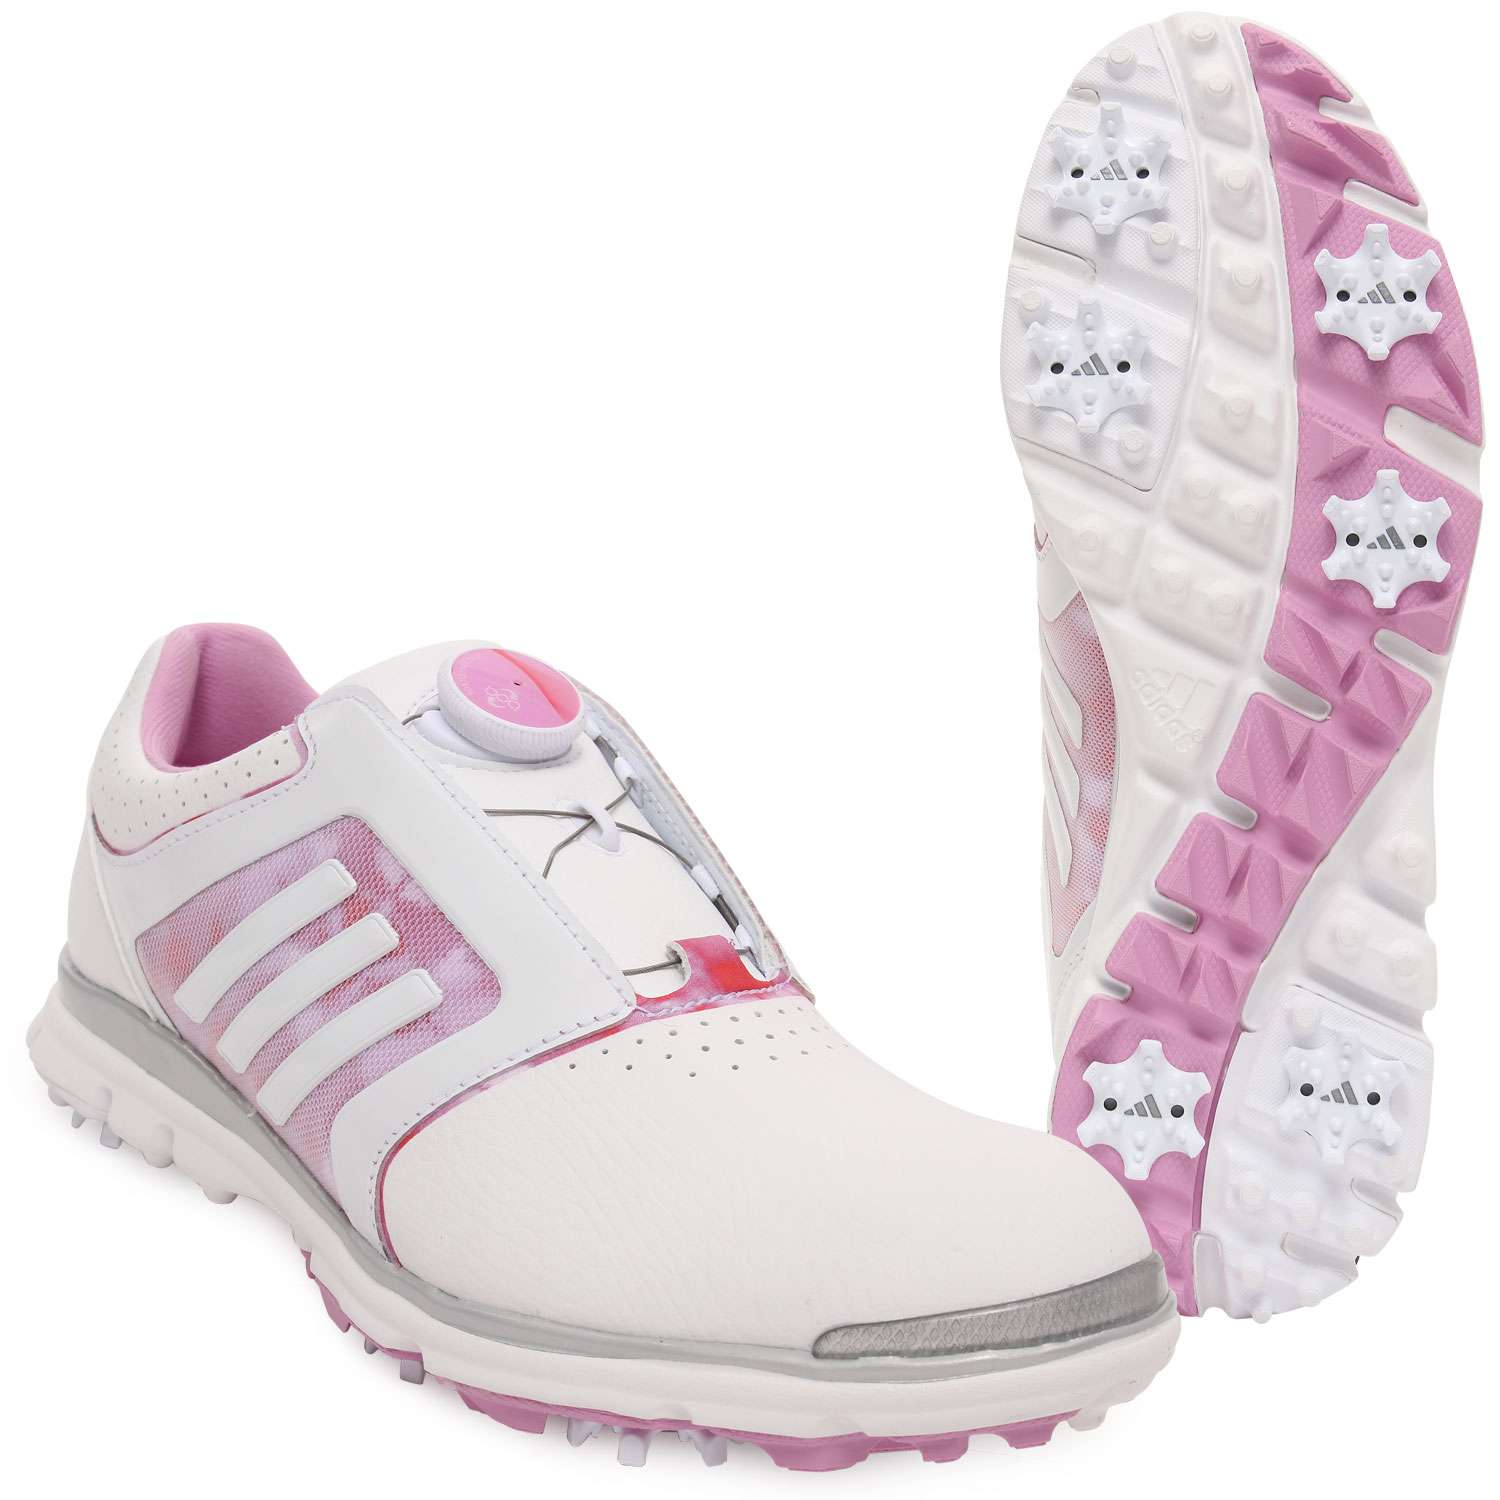 Womens adidas Adistar Tour Boa Spikes Golf Shoes Trainers Size UK 4.5 White  Pink 84205cec4